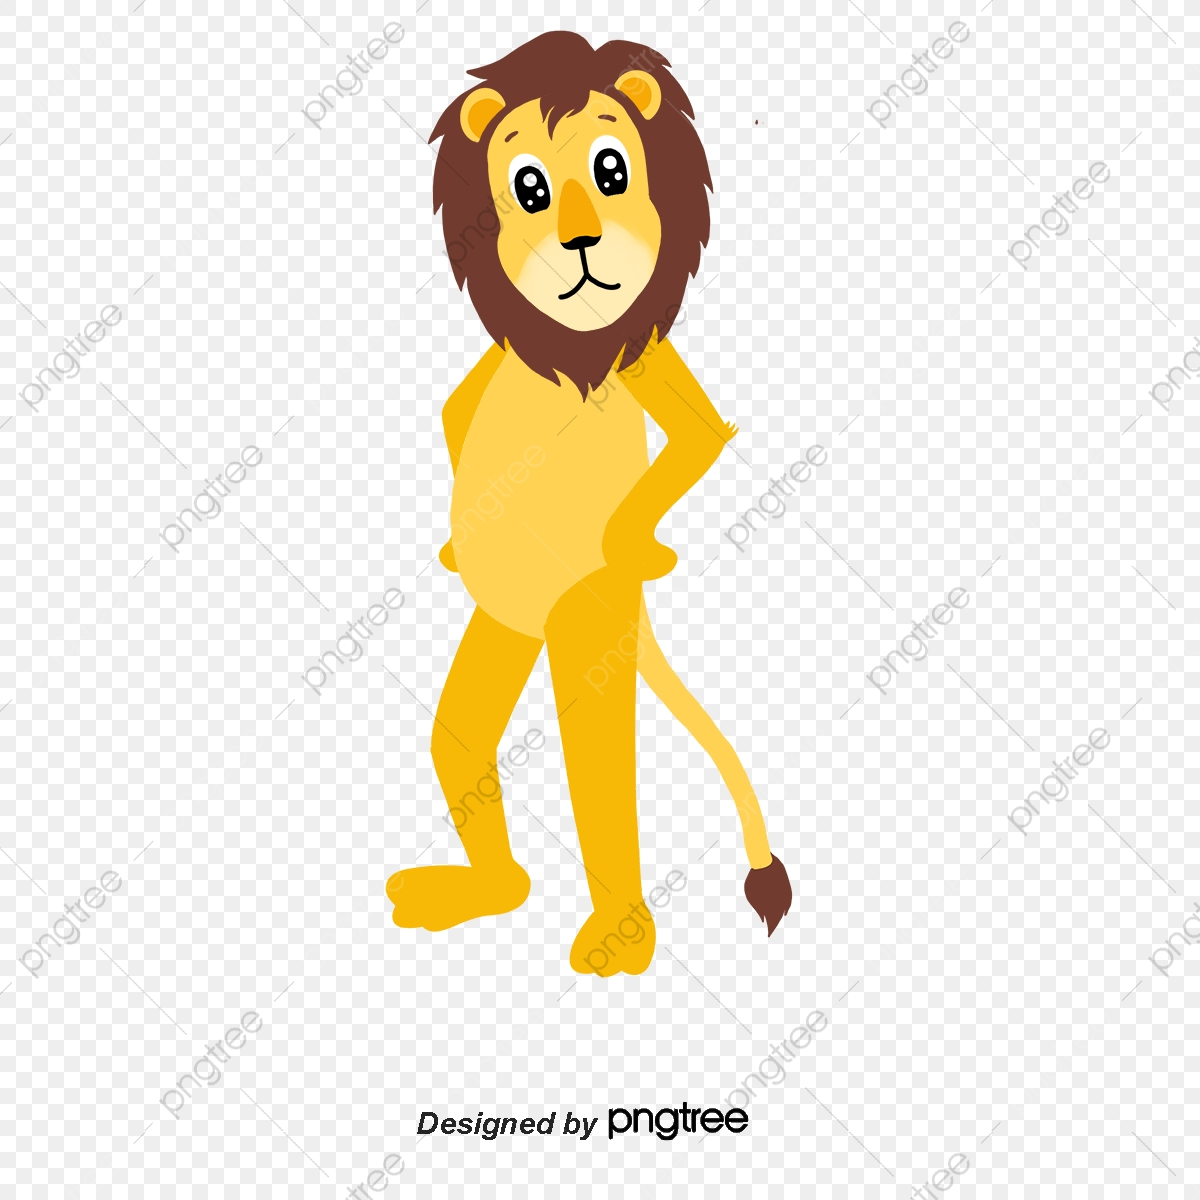 Hand Painted Cartoon Cute Lion Wearing A Crown Cartoon Vector Lion Vector Crown Vector Png Transparent Clipart Image And Psd File For Free Download Report a problem with this image. https pngtree com freepng hand painted cartoon cute lion wearing a crown 2592167 html